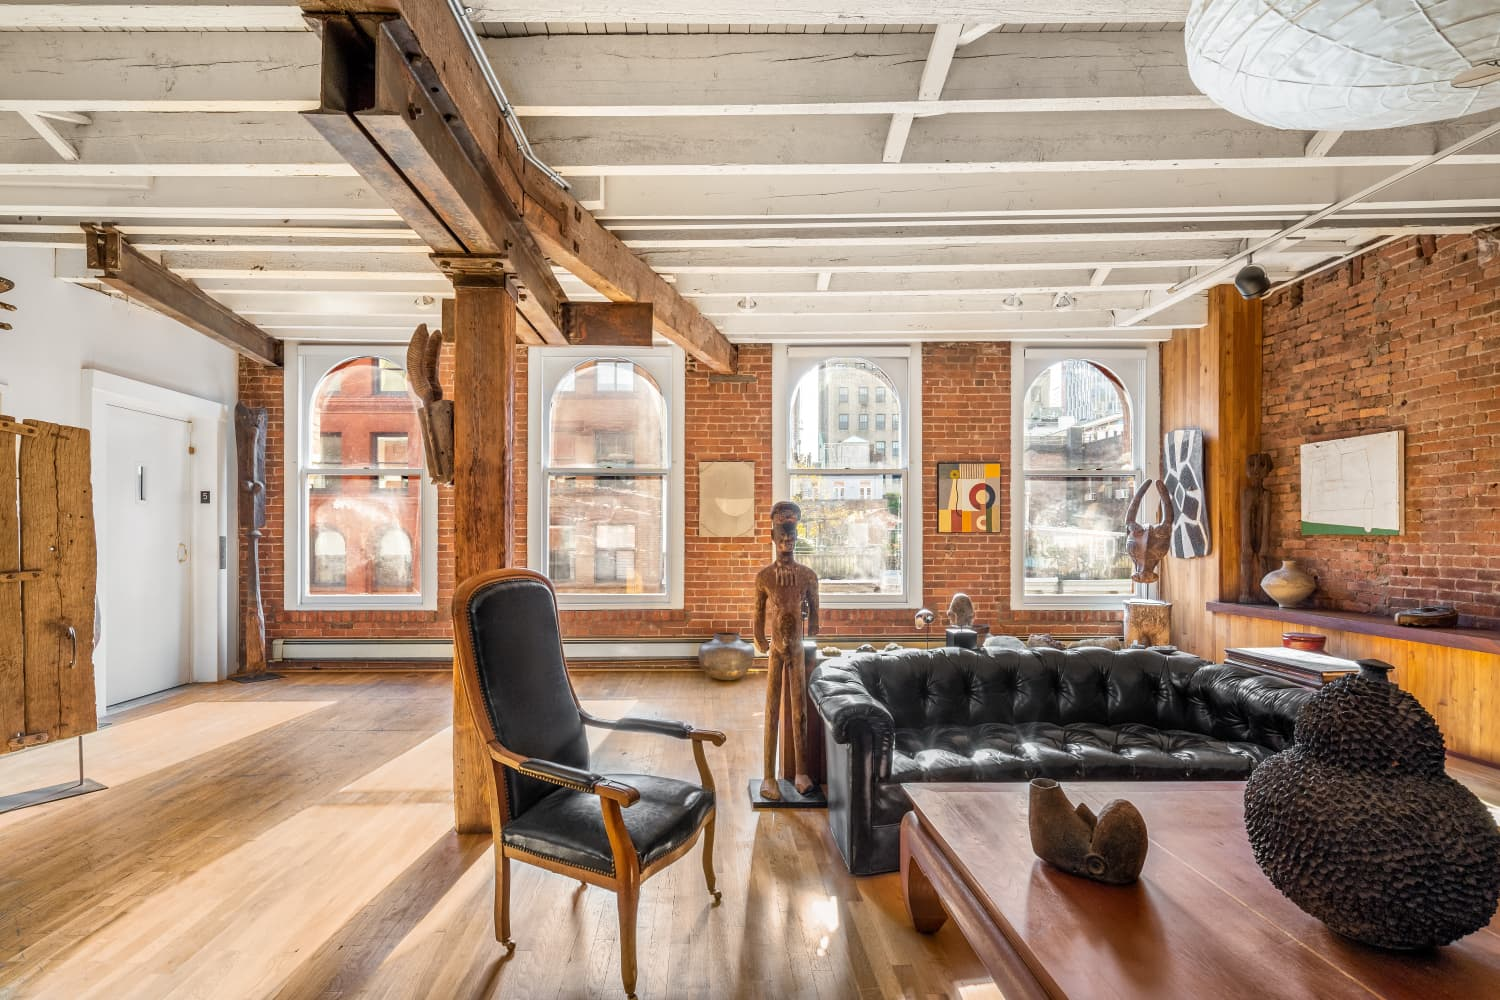 This Famous Playwright's NYC Loft Is an Exposed Brick Oasis